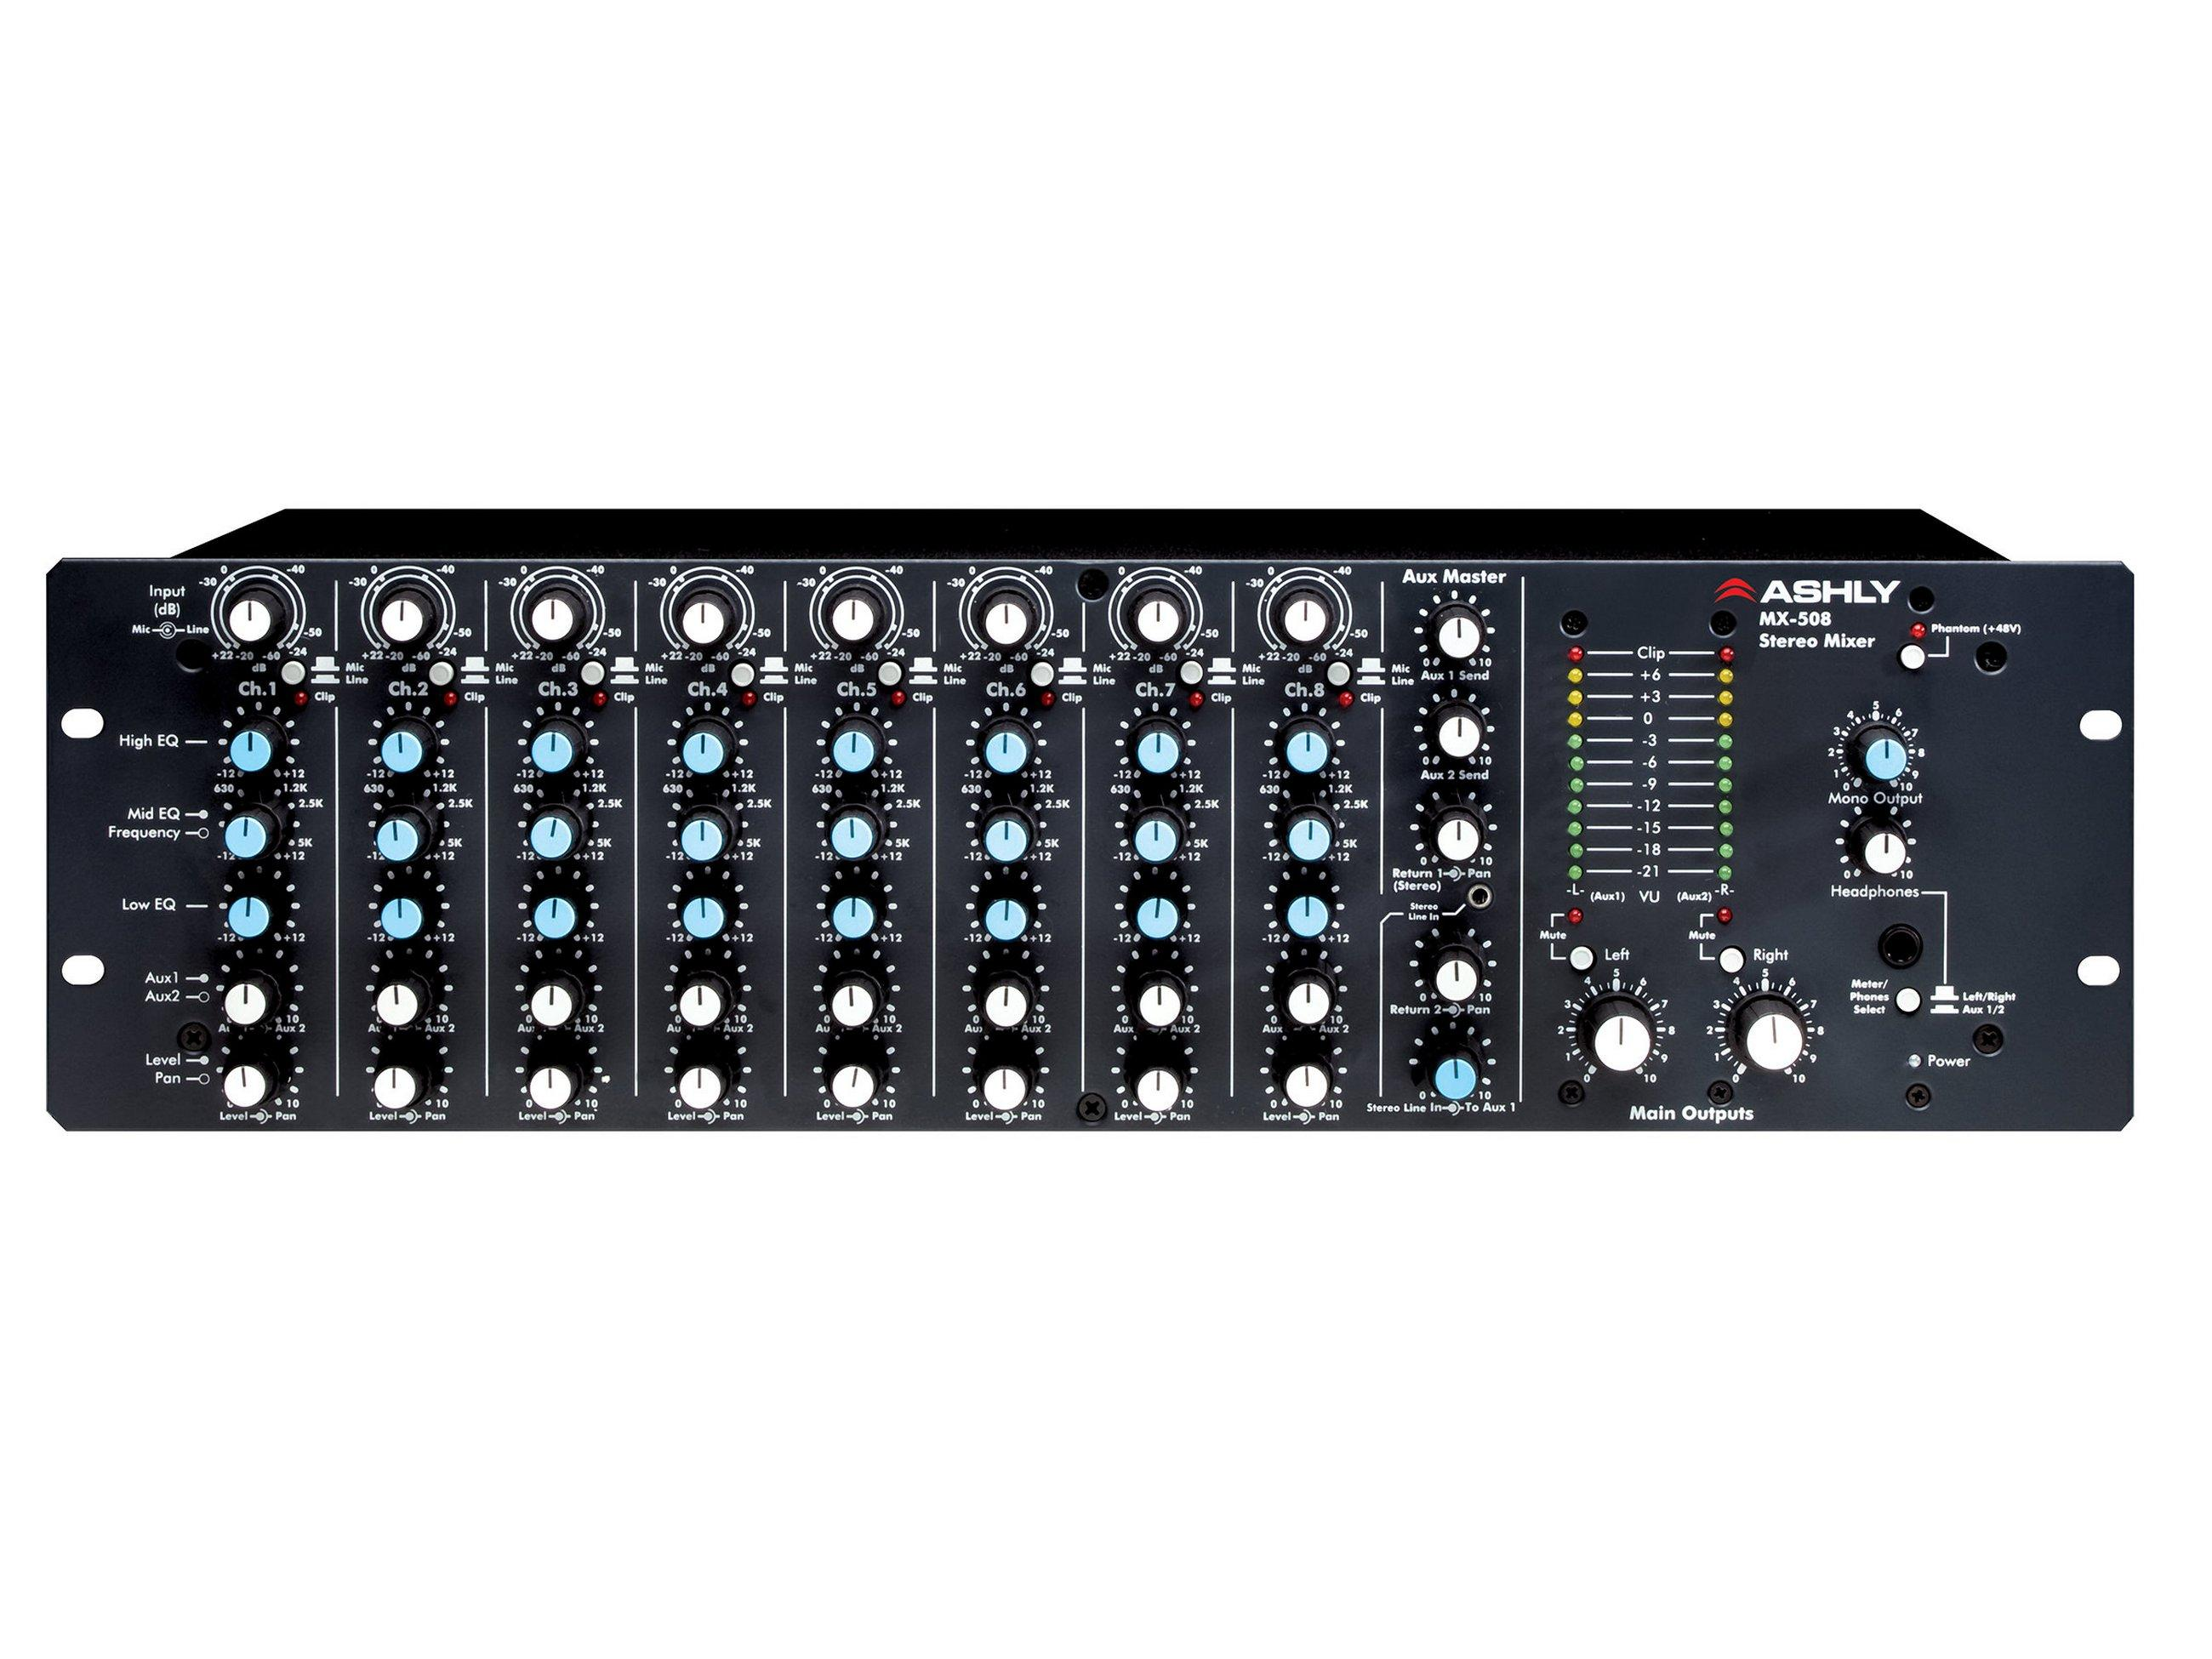 MX-508 Mixer 8 Input Stereo with EQ and Sends/3U by Ashly